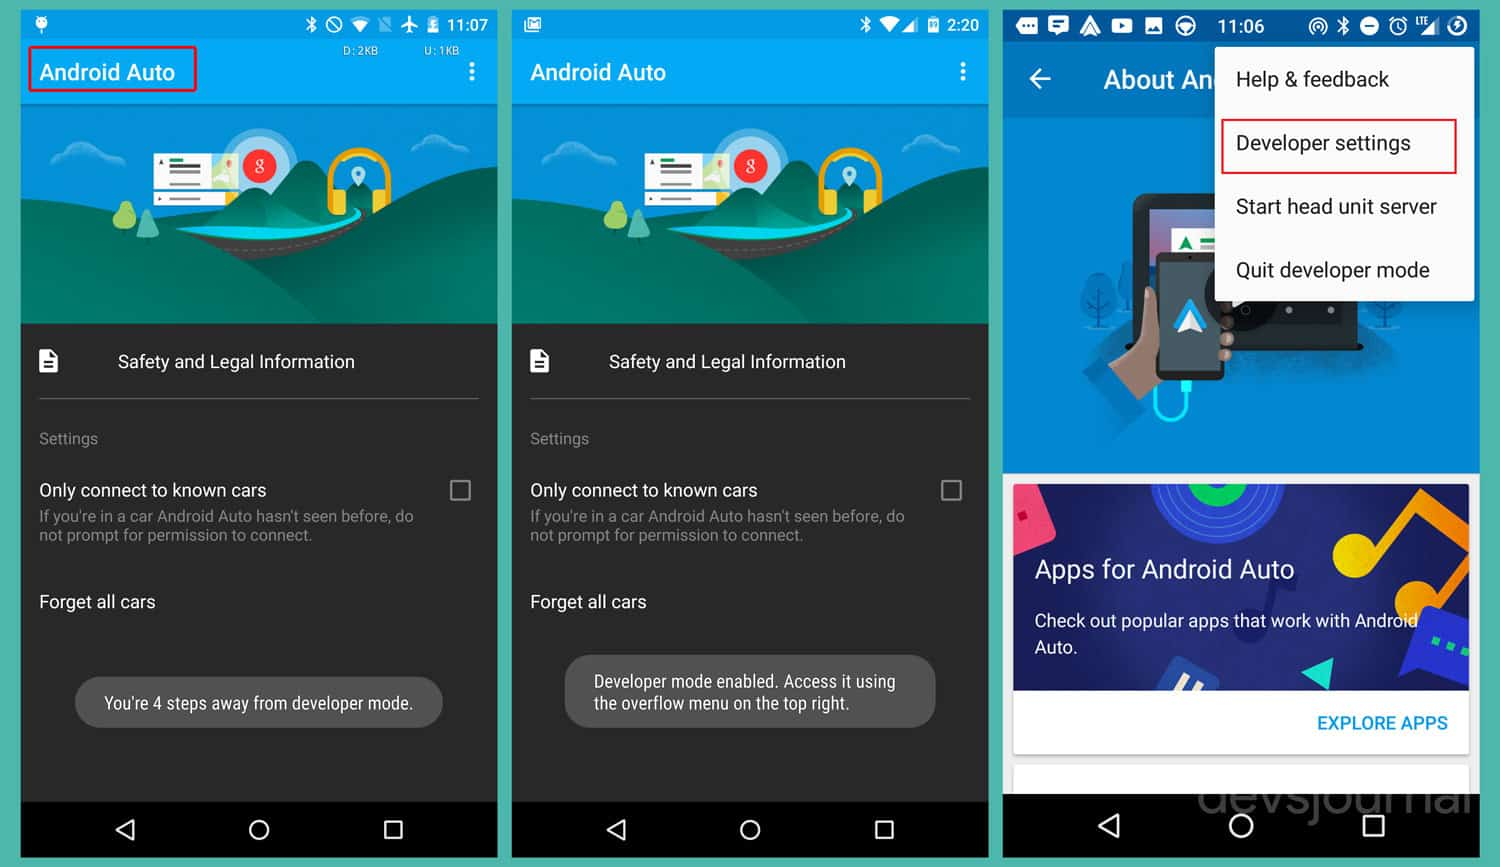 How to enable Developer Settings in Android Auto to use YouTube